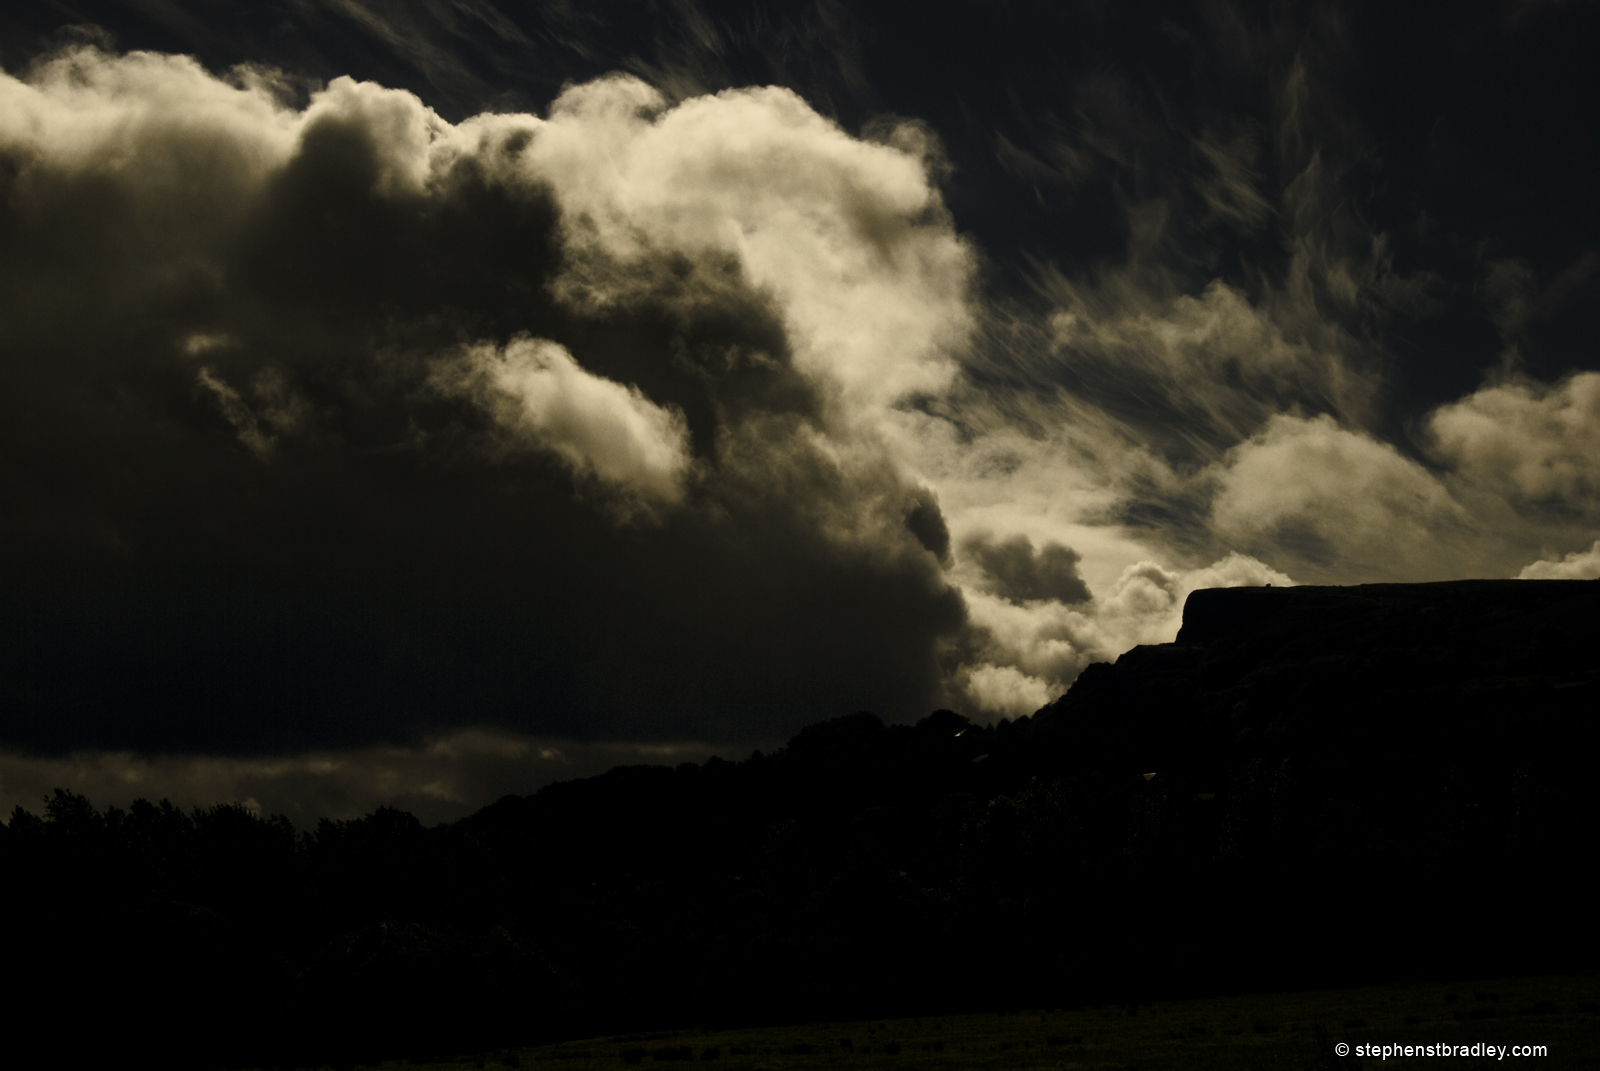 Landscape photograph of storm clouds over Cavehill Belfast, Northern Ireland, UK. Image 4390.